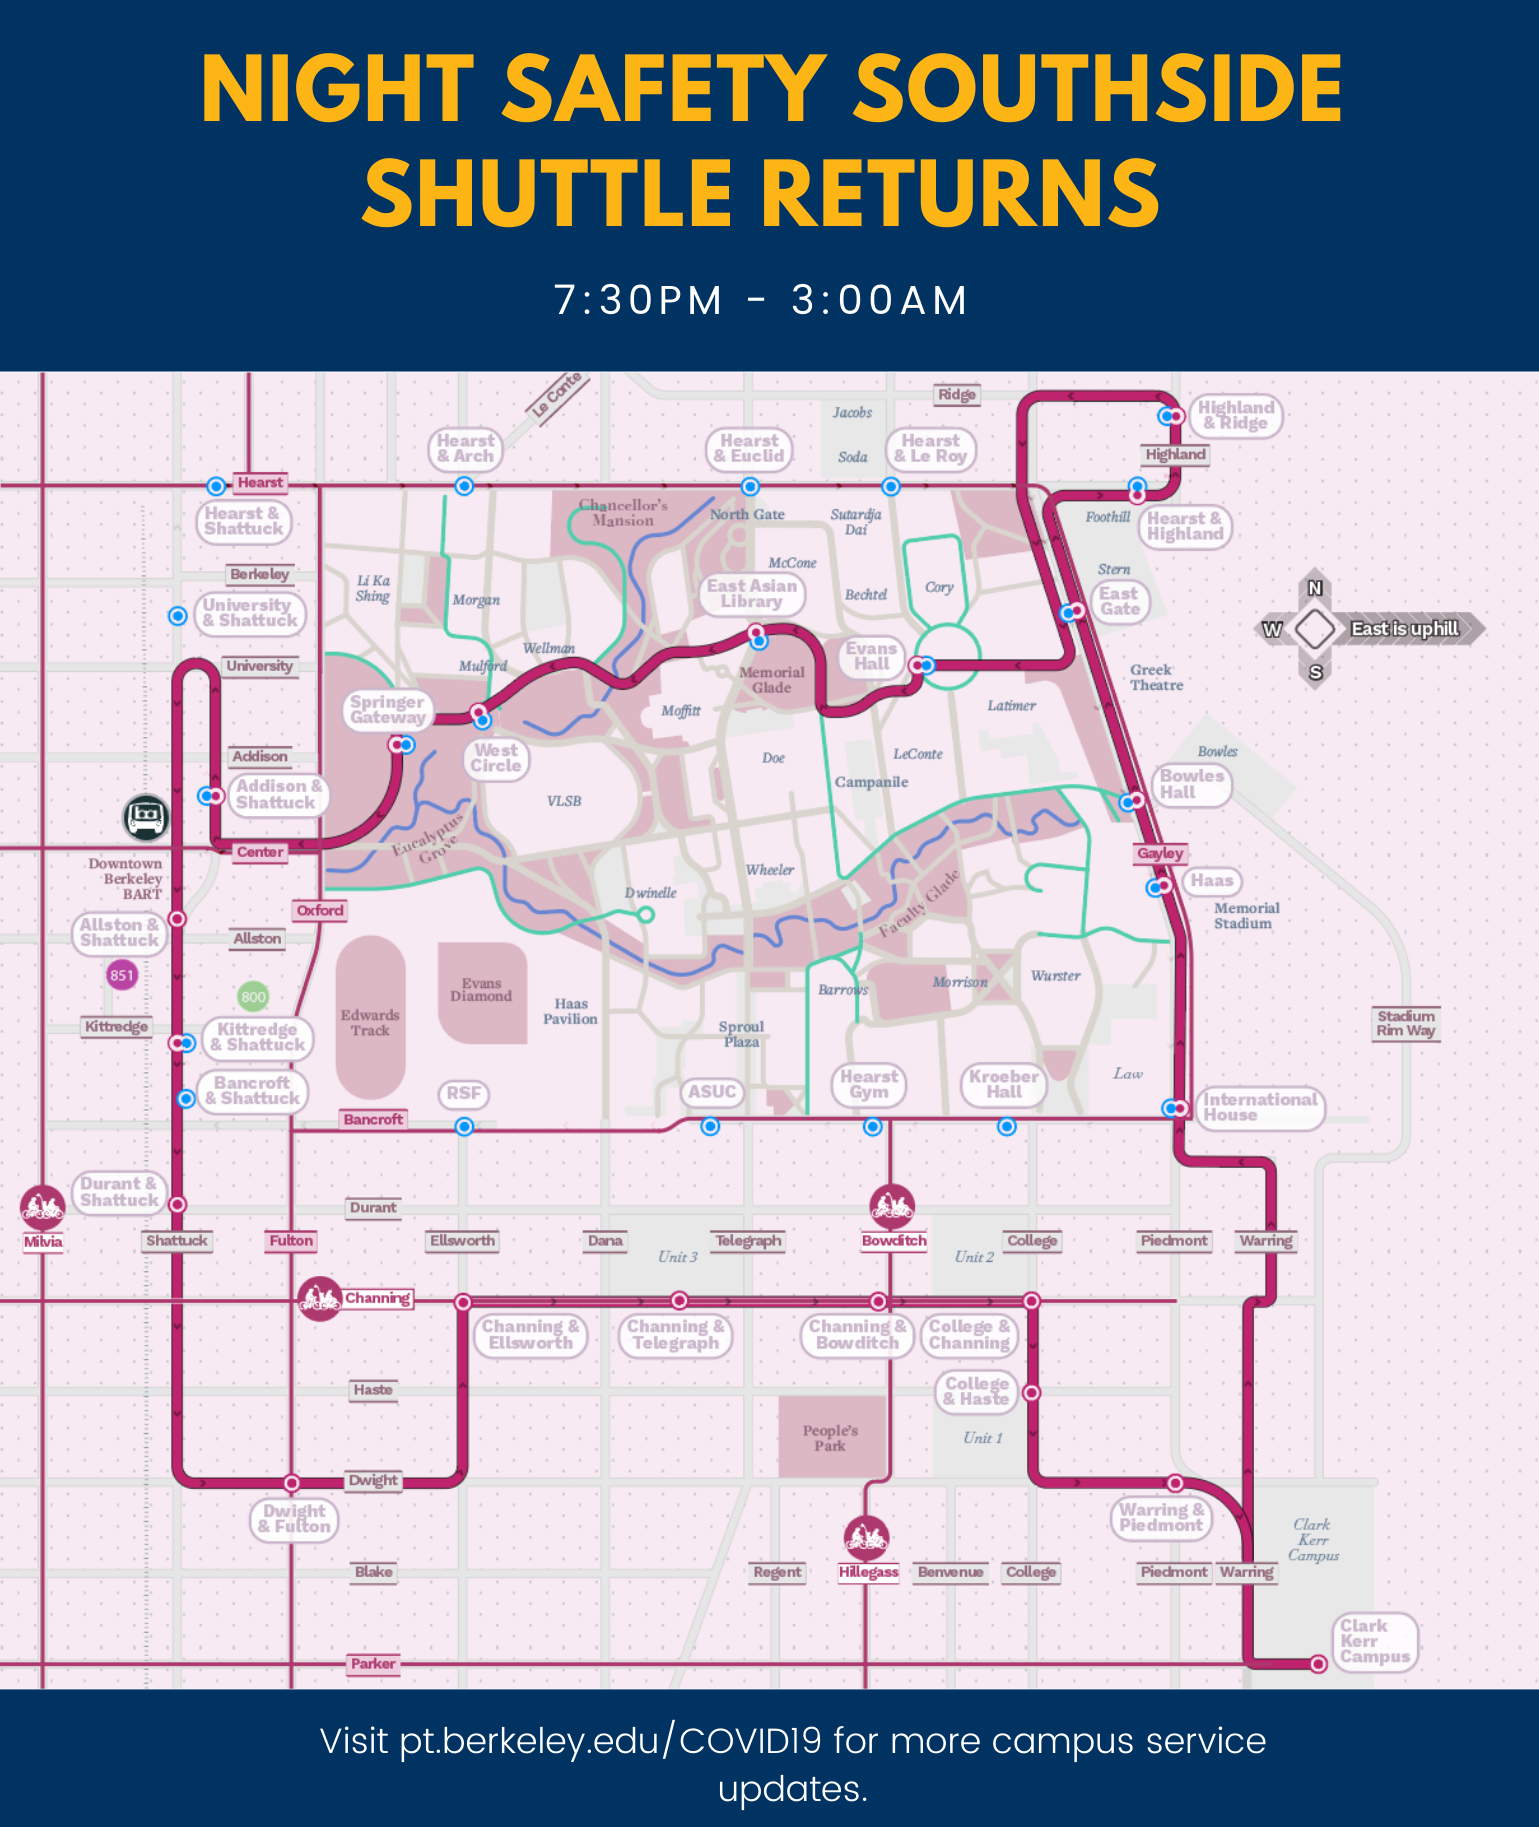 Night Safety Southside shuttle map